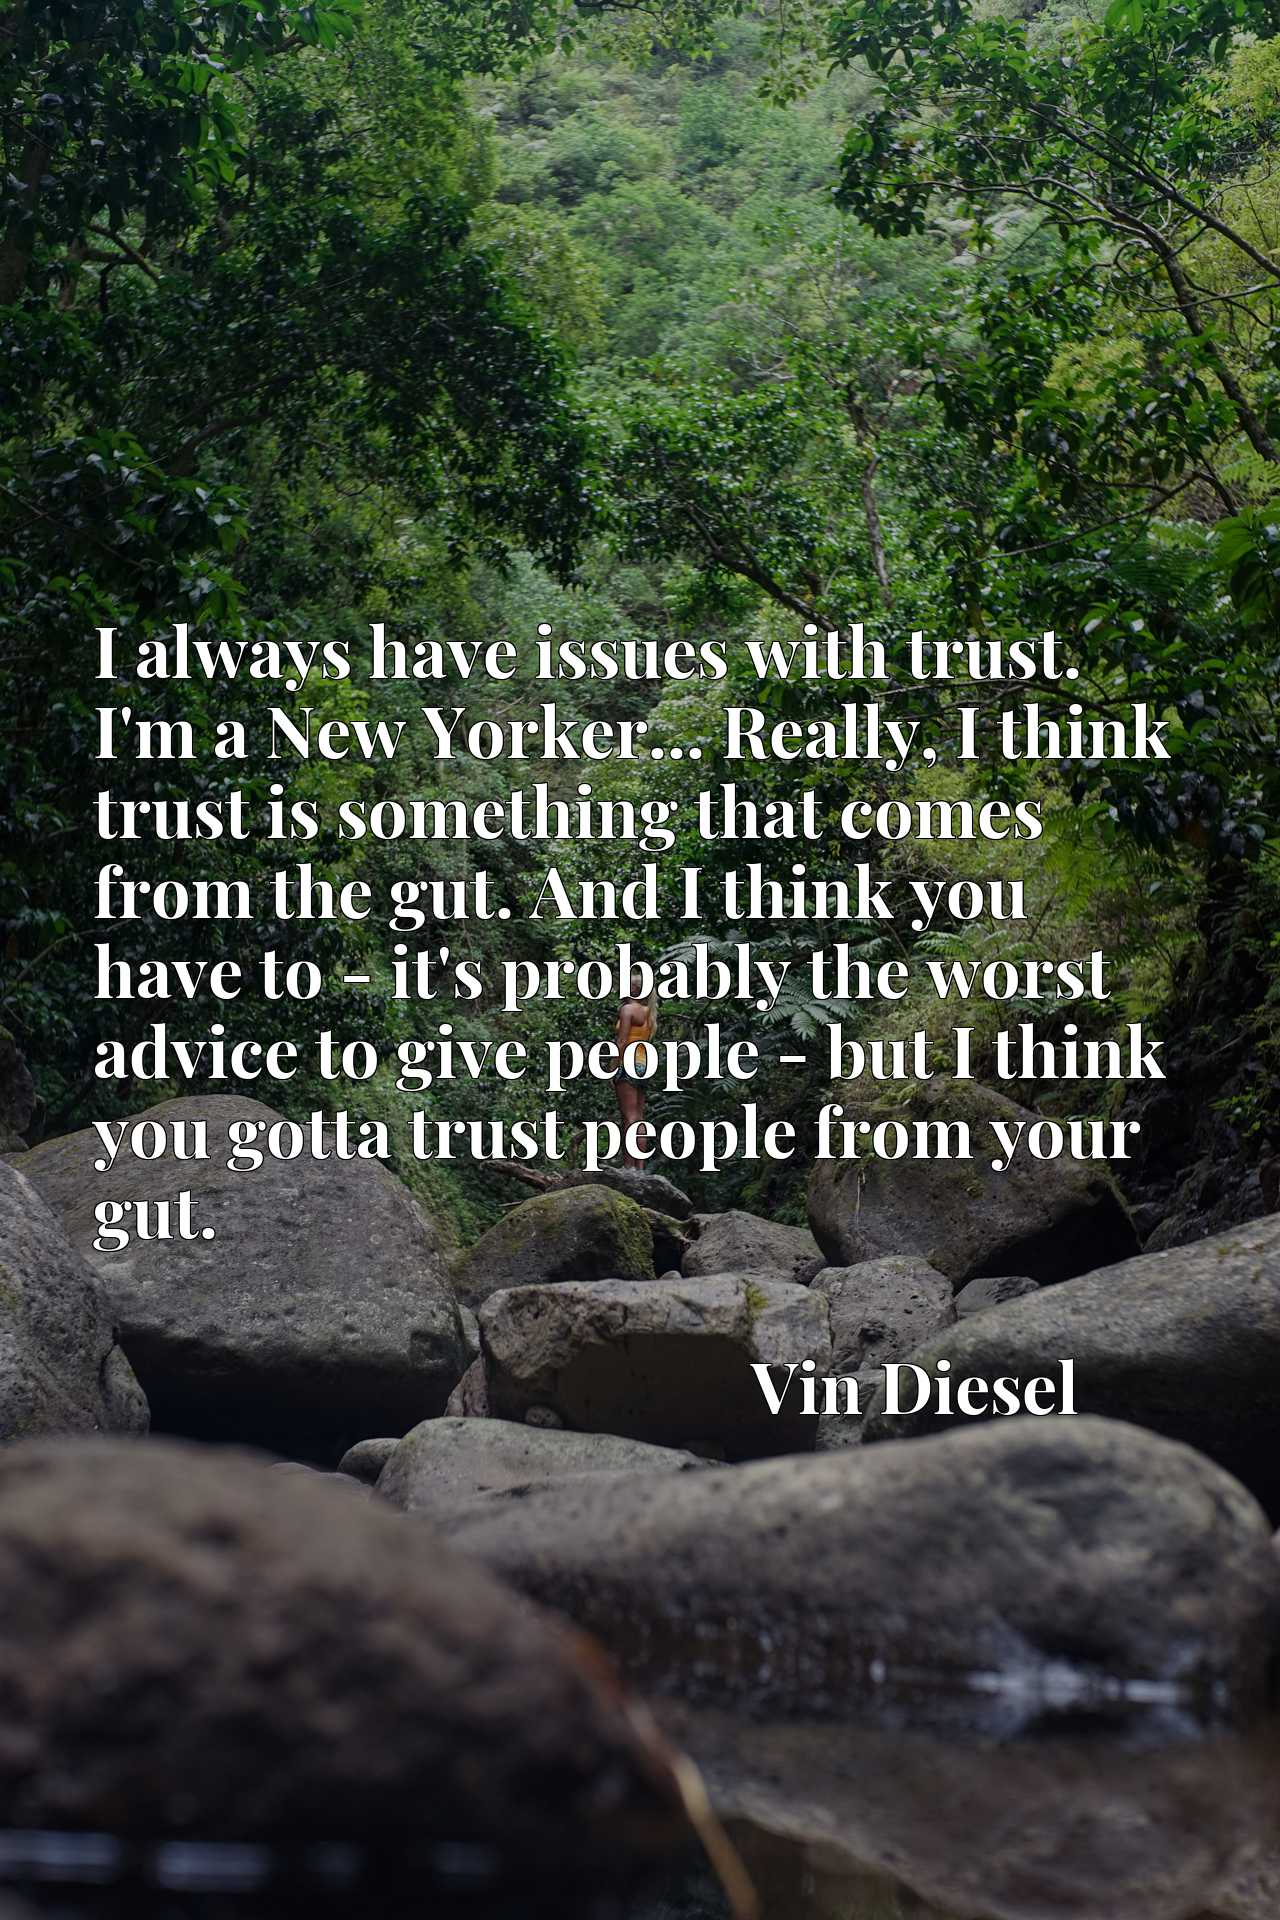 I always have issues with trust. I'm a New Yorker... Really, I think trust is something that comes from the gut. And I think you have to - it's probably the worst advice to give people - but I think you gotta trust people from your gut.